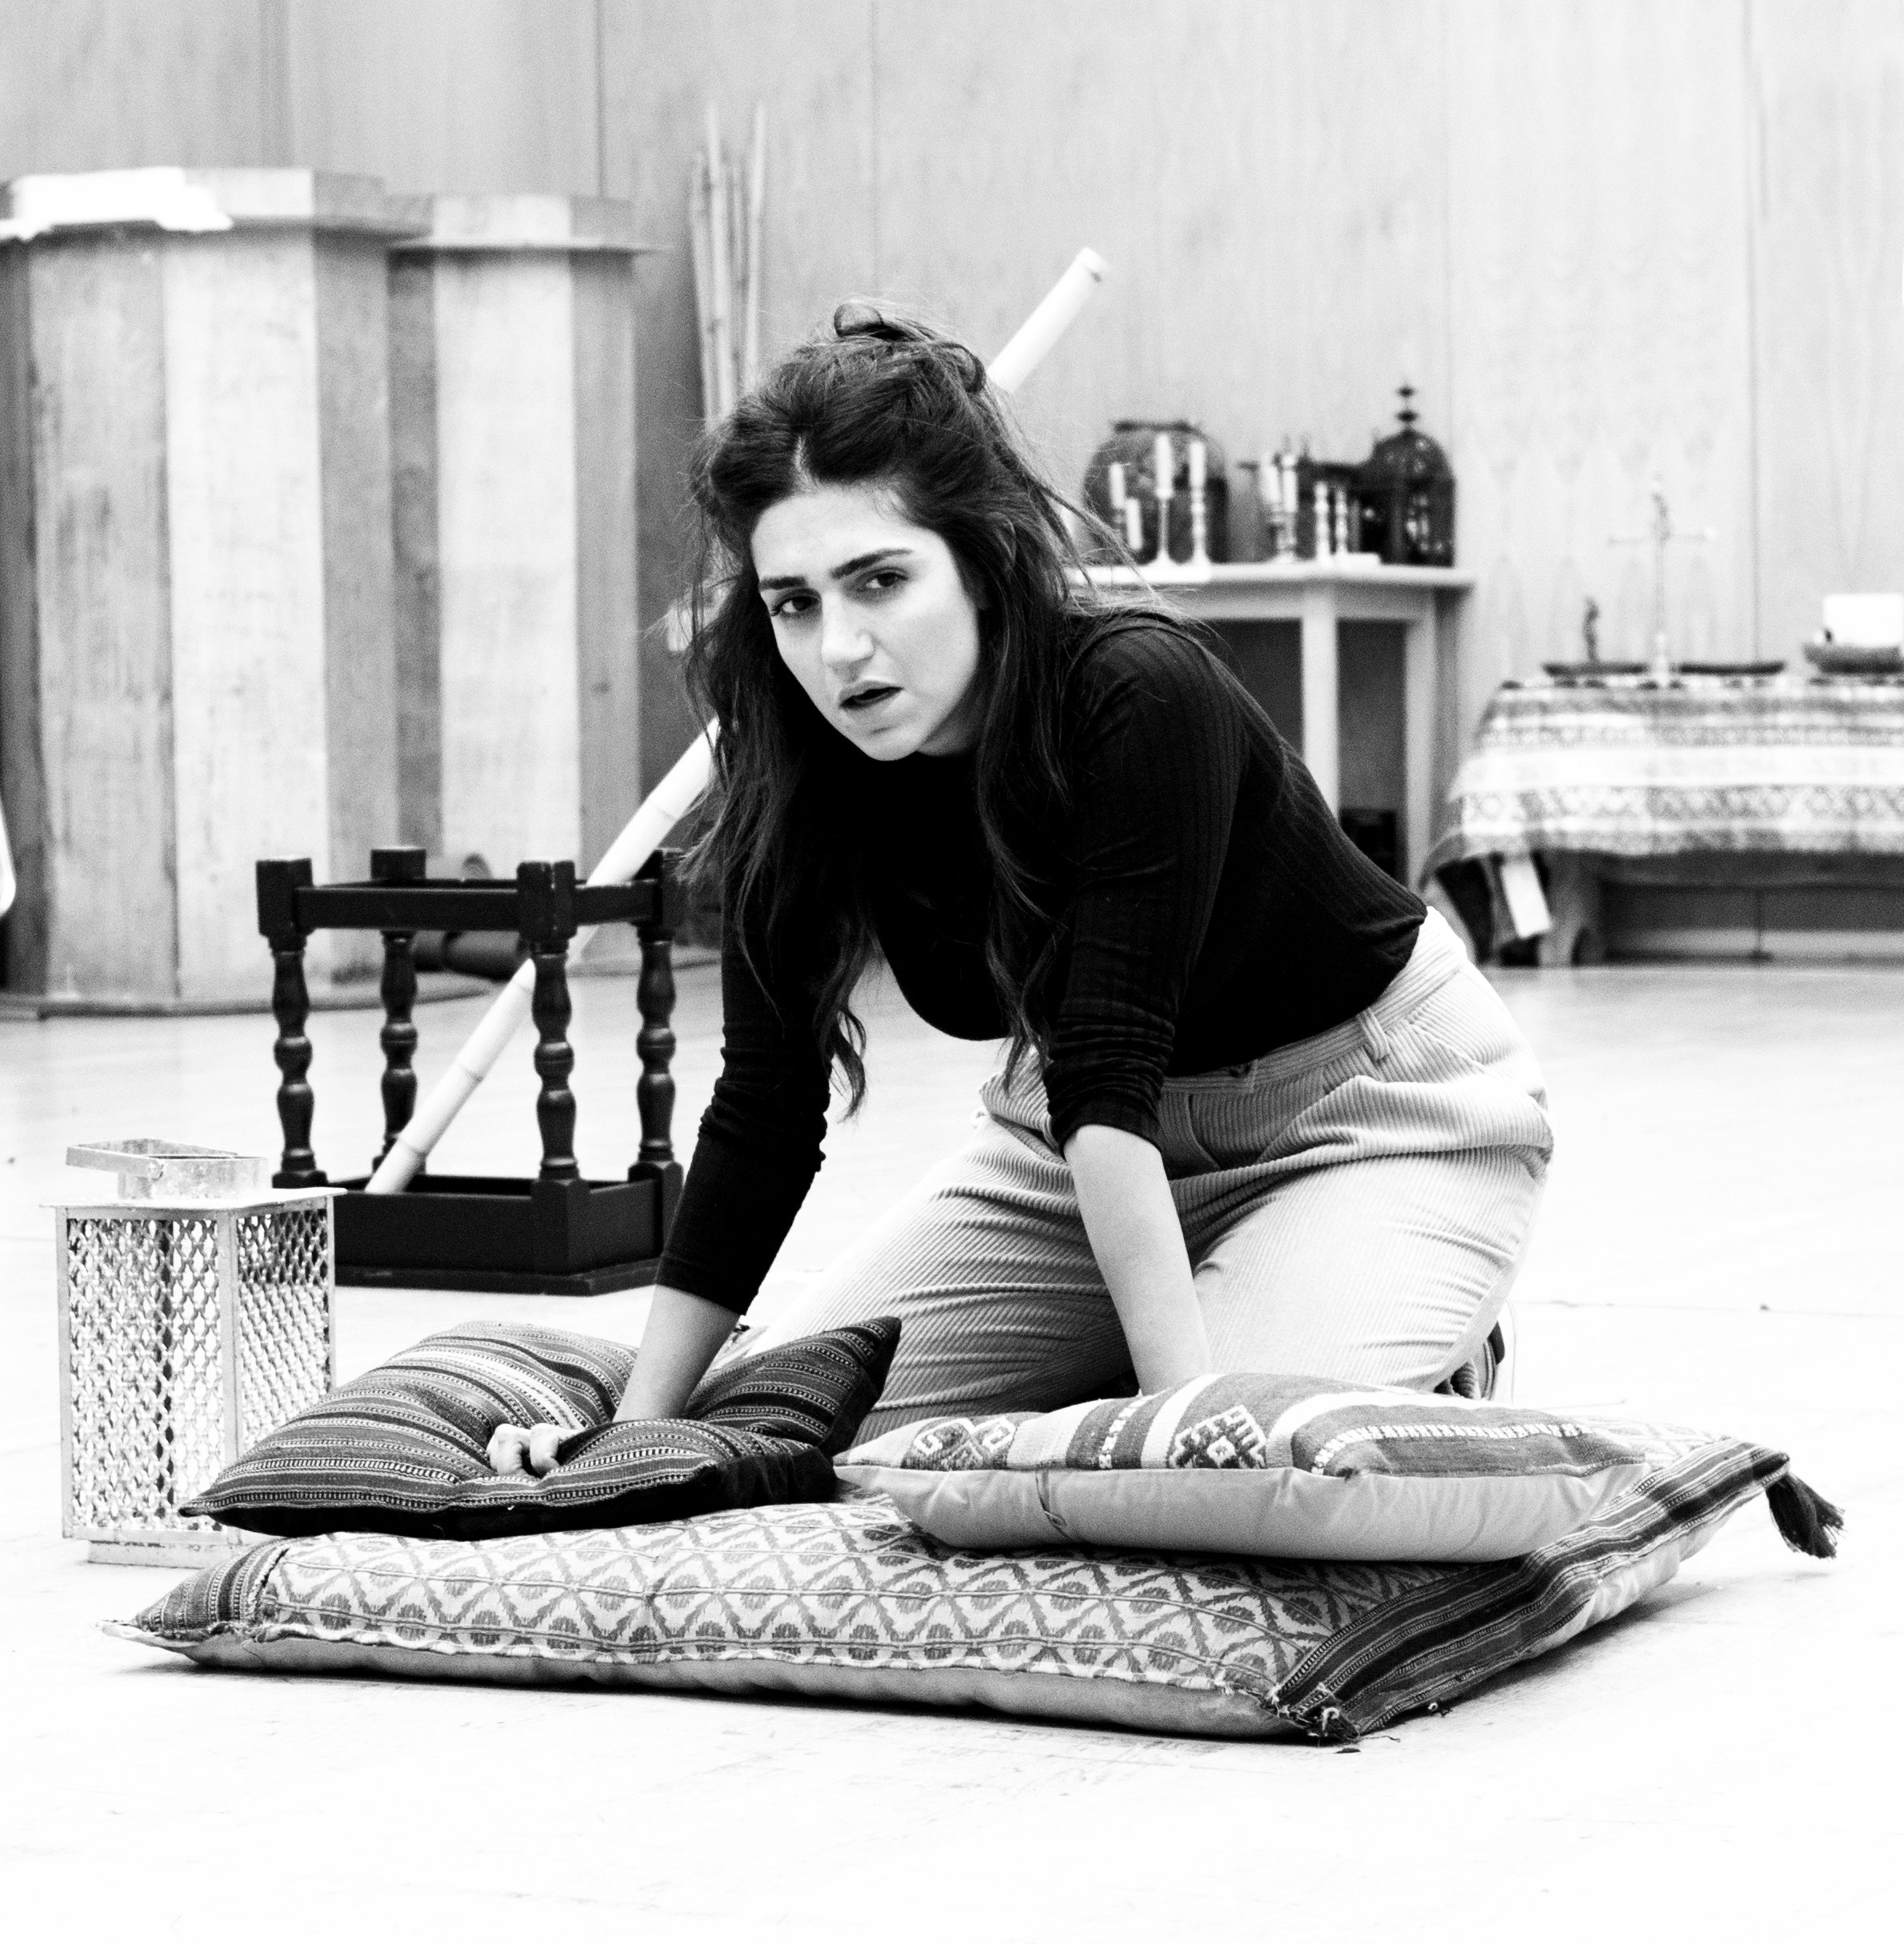 A woman kneeling on a pile of cushions